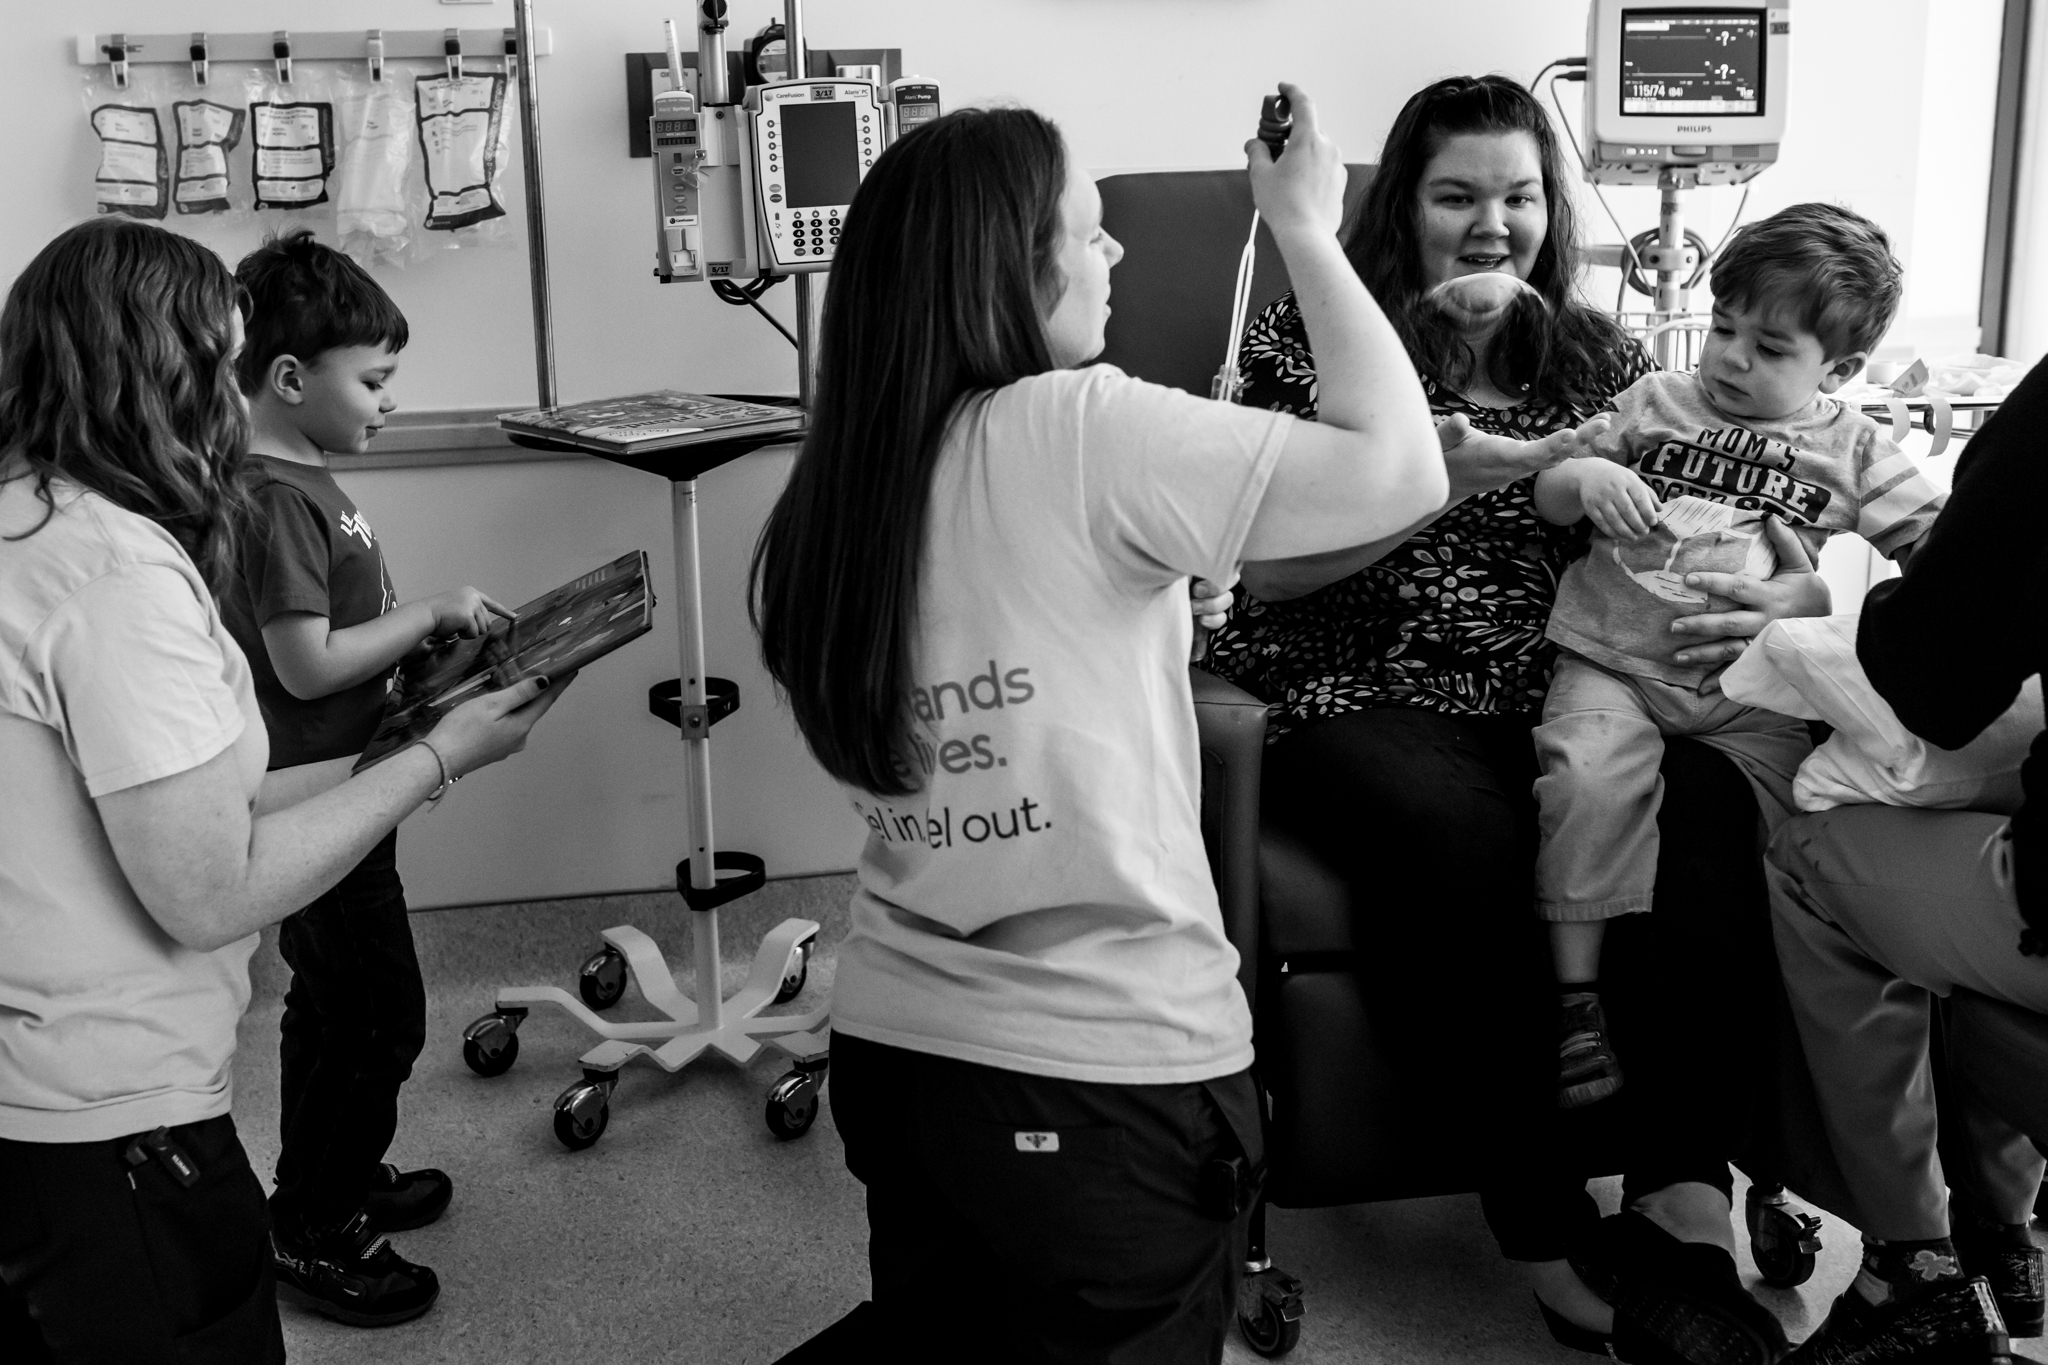 nurses in the childrens hospital try to distract kids while they get an iv